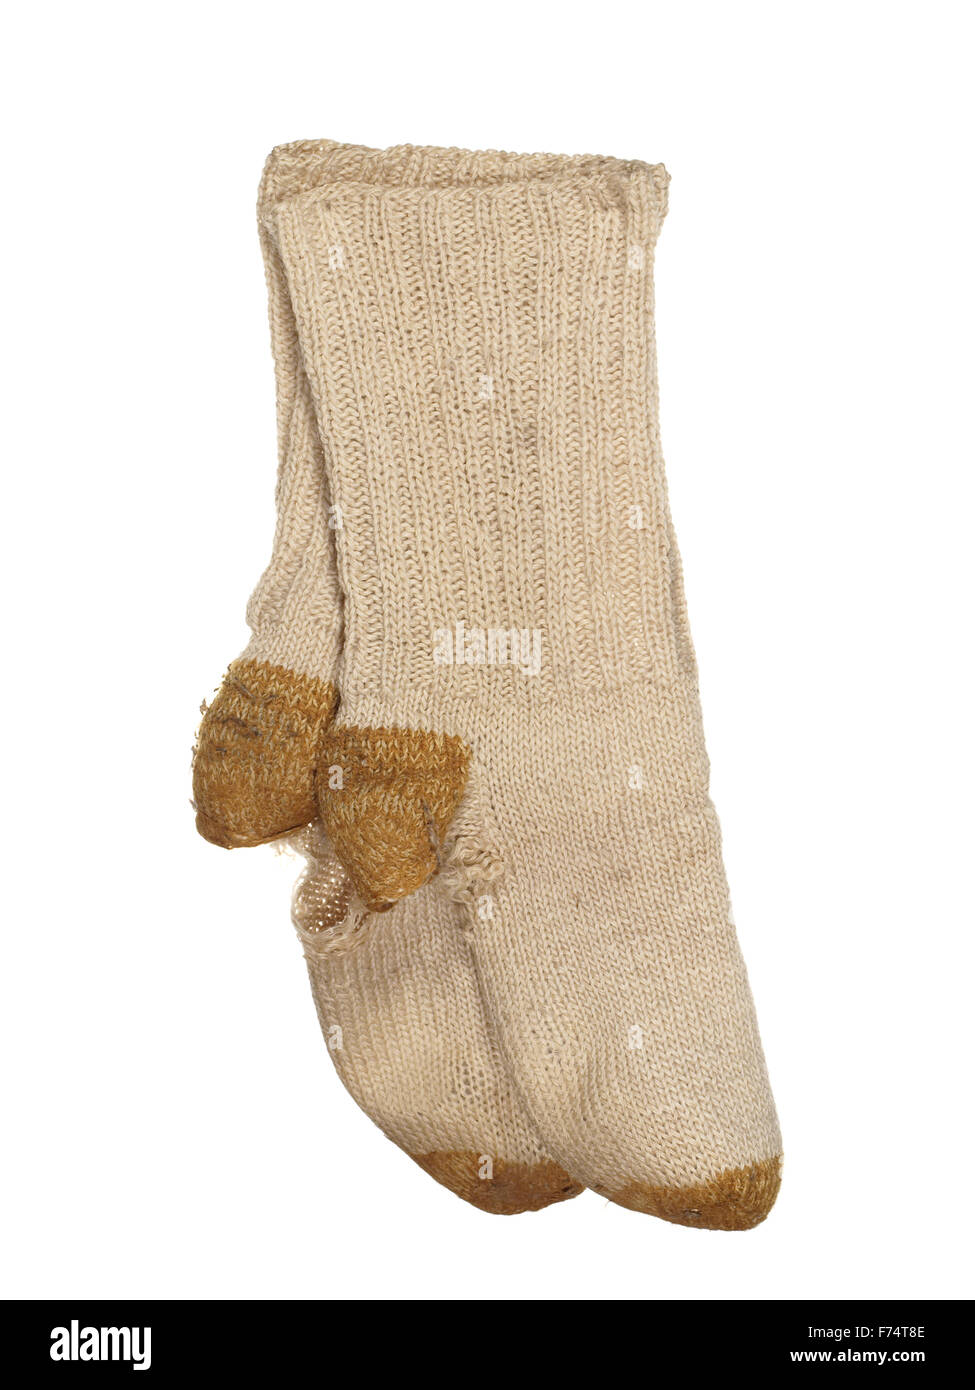 Old ragged woolen socks isolated on a white background. - Stock Image